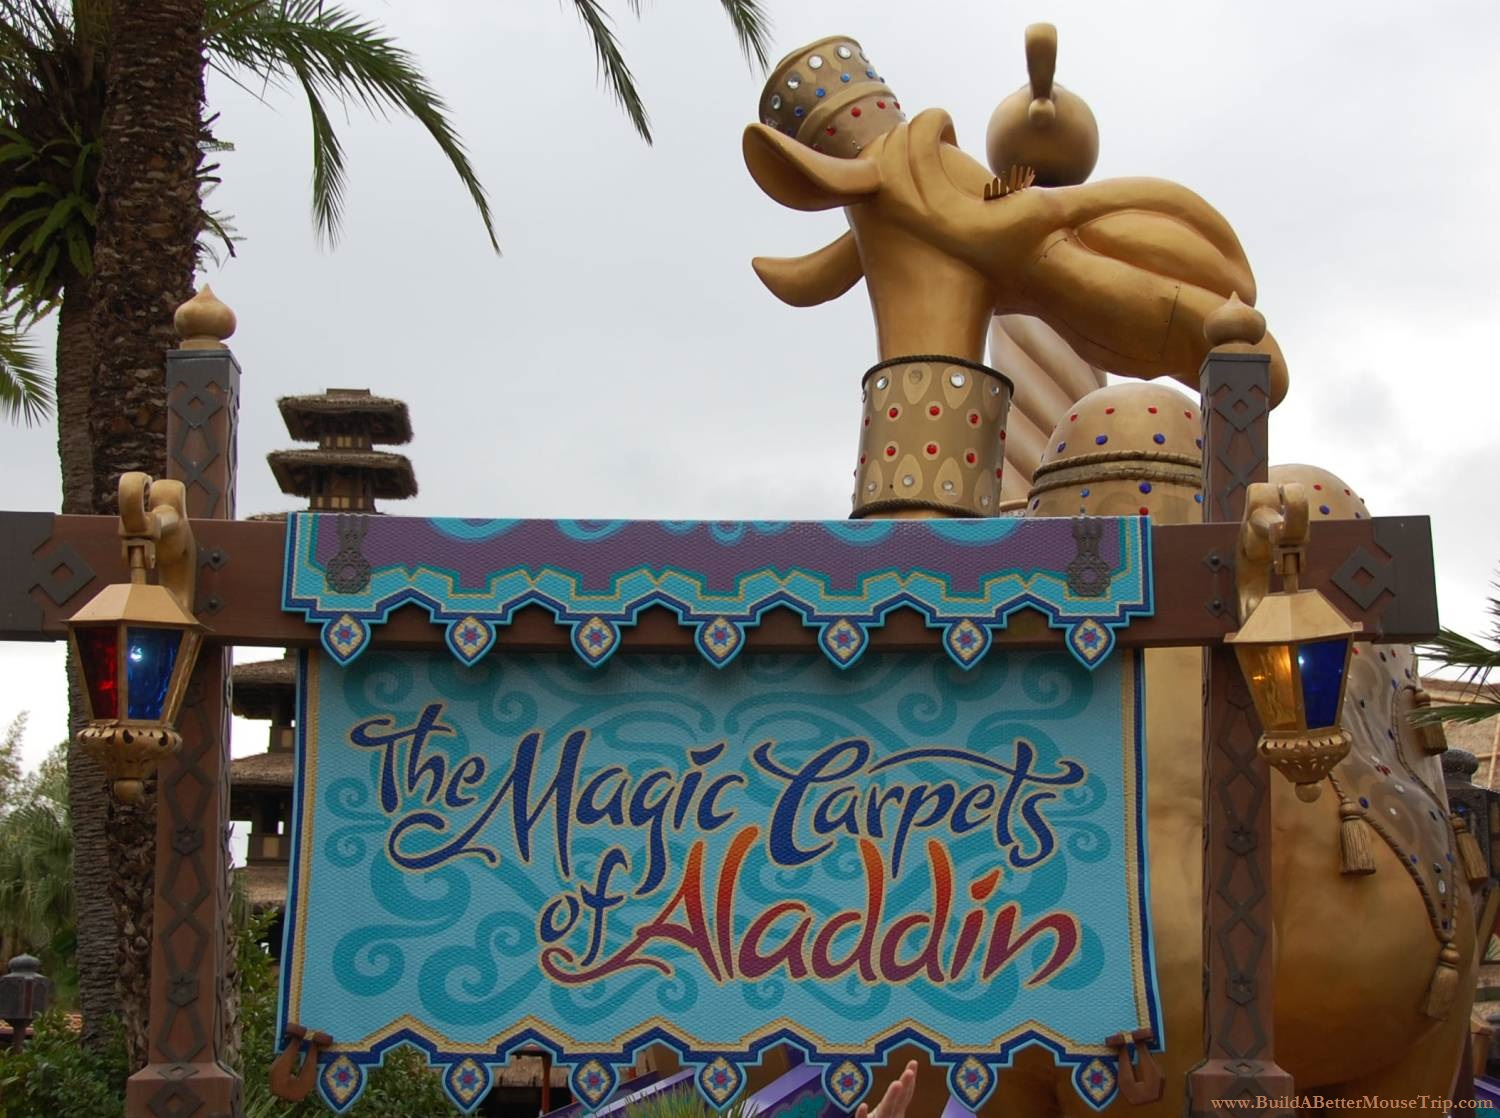 The Magic Carpets of Aladdin ride in Adventureland at the Magic Kingdom / Walt Disney World Resort.